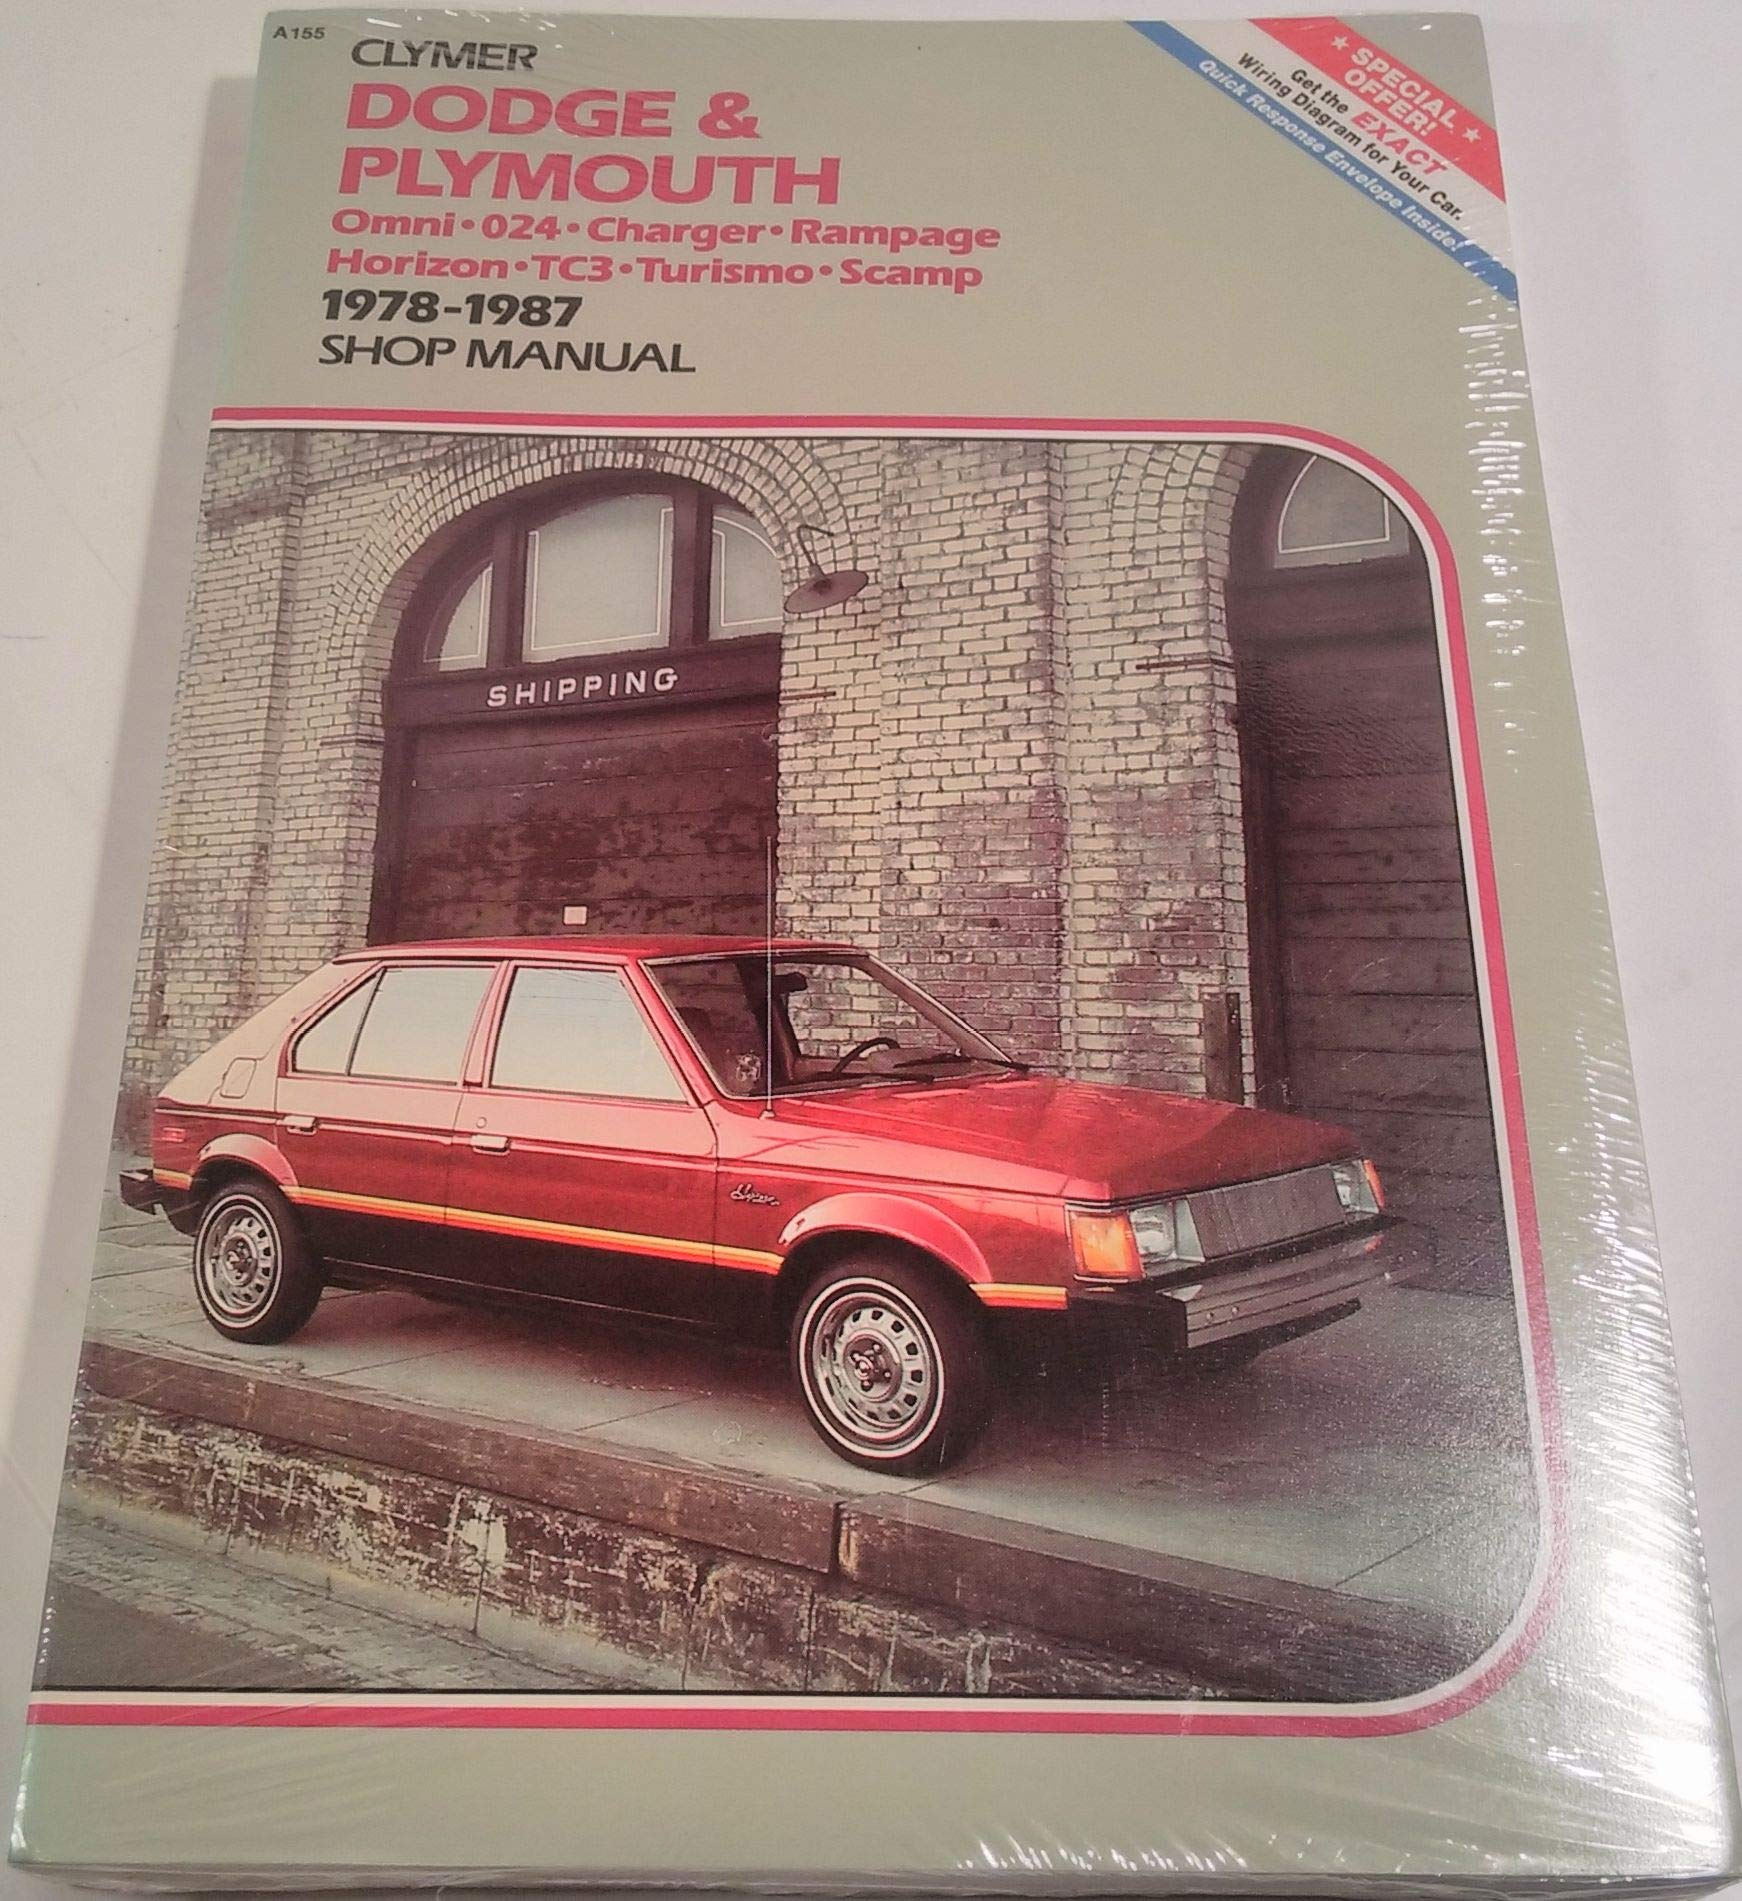 Dodge Plymouth Omni 024 Charger Rampage Horizon Tc3 Turismo Scamp Wiring Diagram 1978 1987 Shop Manual Alan Ahlstrand 9780892872978 Books